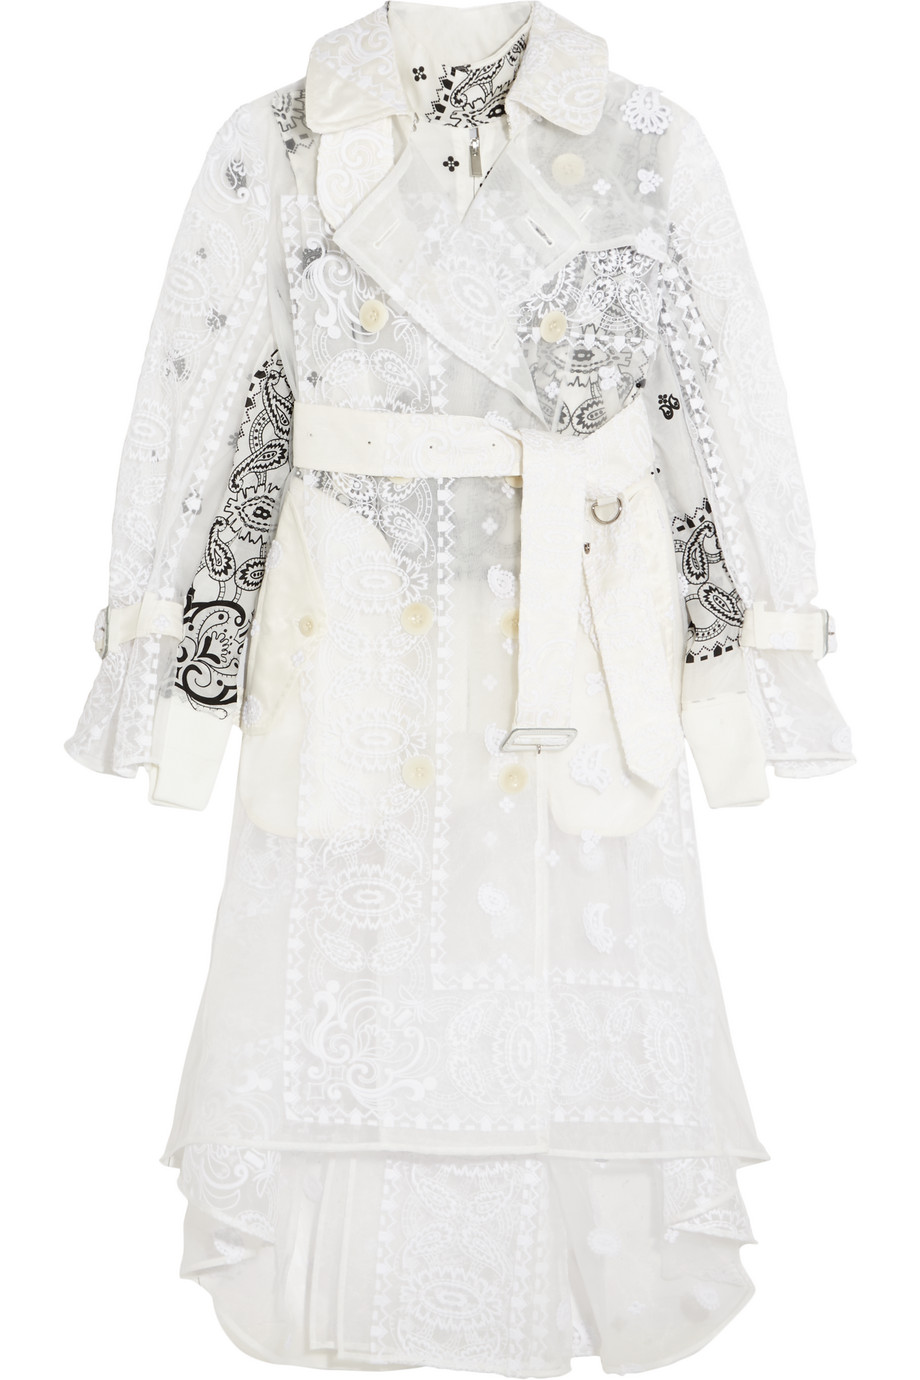 Sacai Embroidered Organza and Printed Poplin Trench Coat, Off-White, Women's, Size: 3